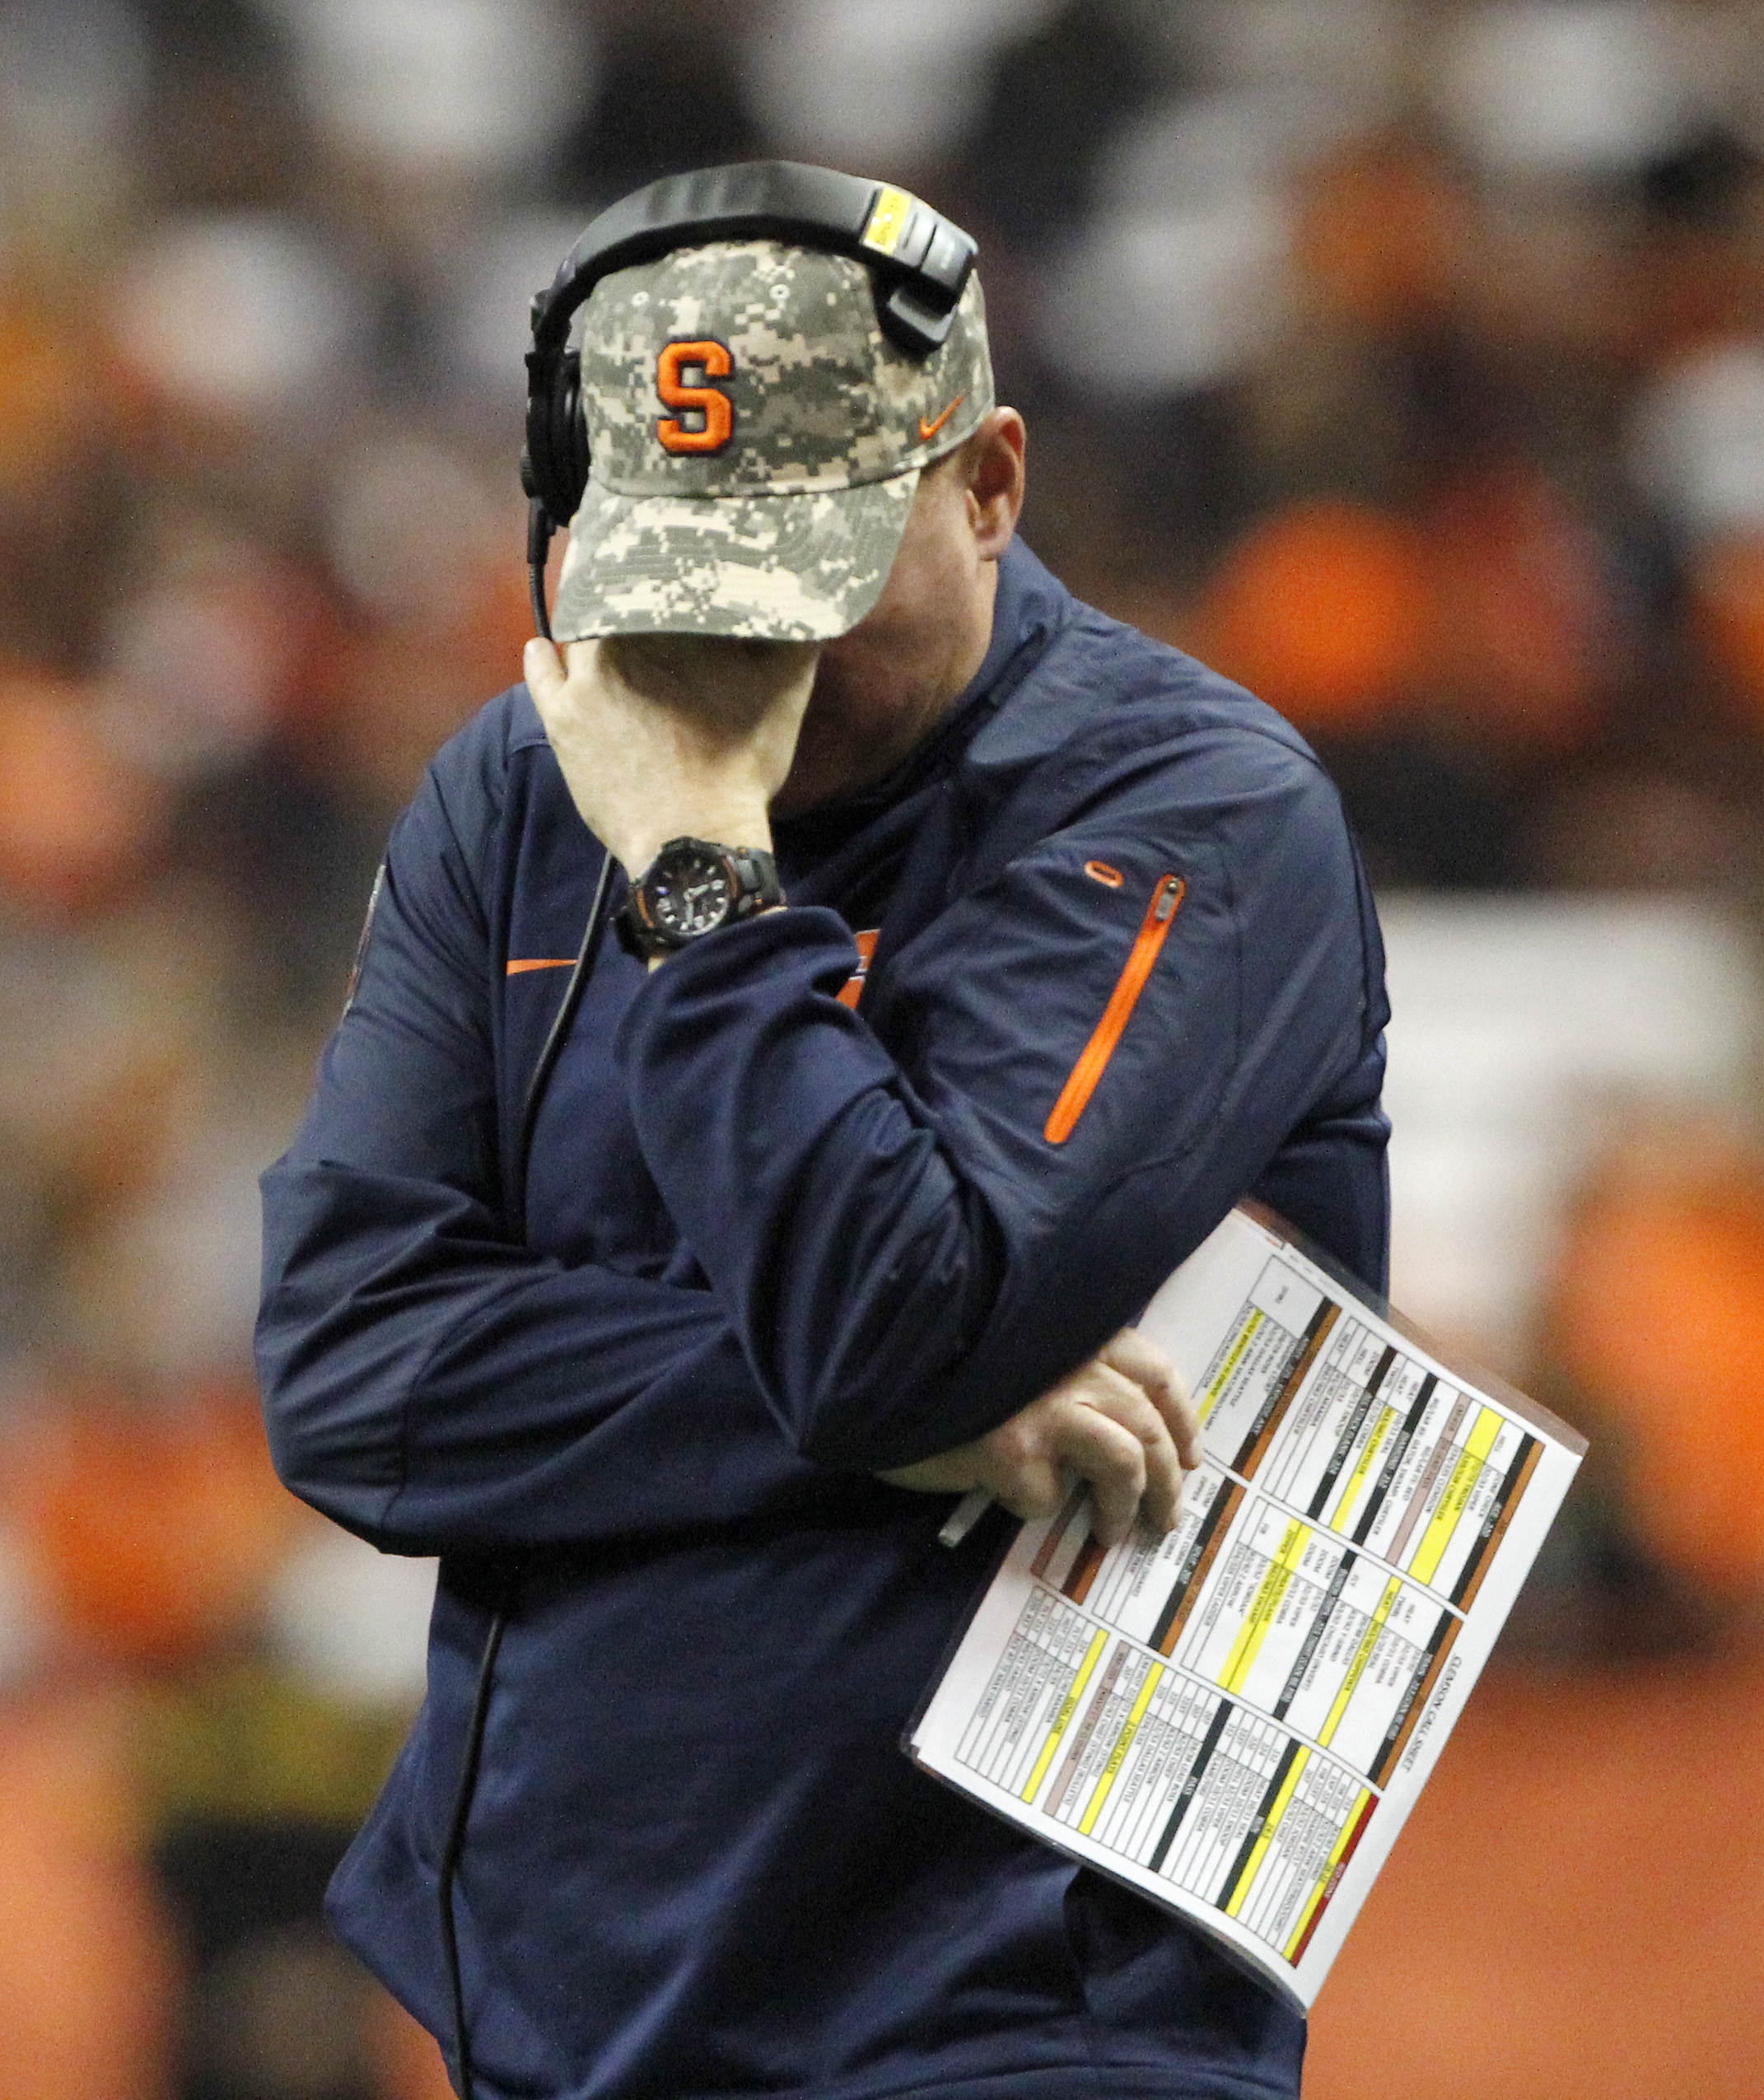 Syracuse head coach Scott Shafer reacts during a timeout in the fourth quarter of an NCAA college football game against Clemson in Syracuse, N.Y., Saturday, Nov. 14, 2015. Clemson won 37-27. (AP Photo/Nick Lisi)